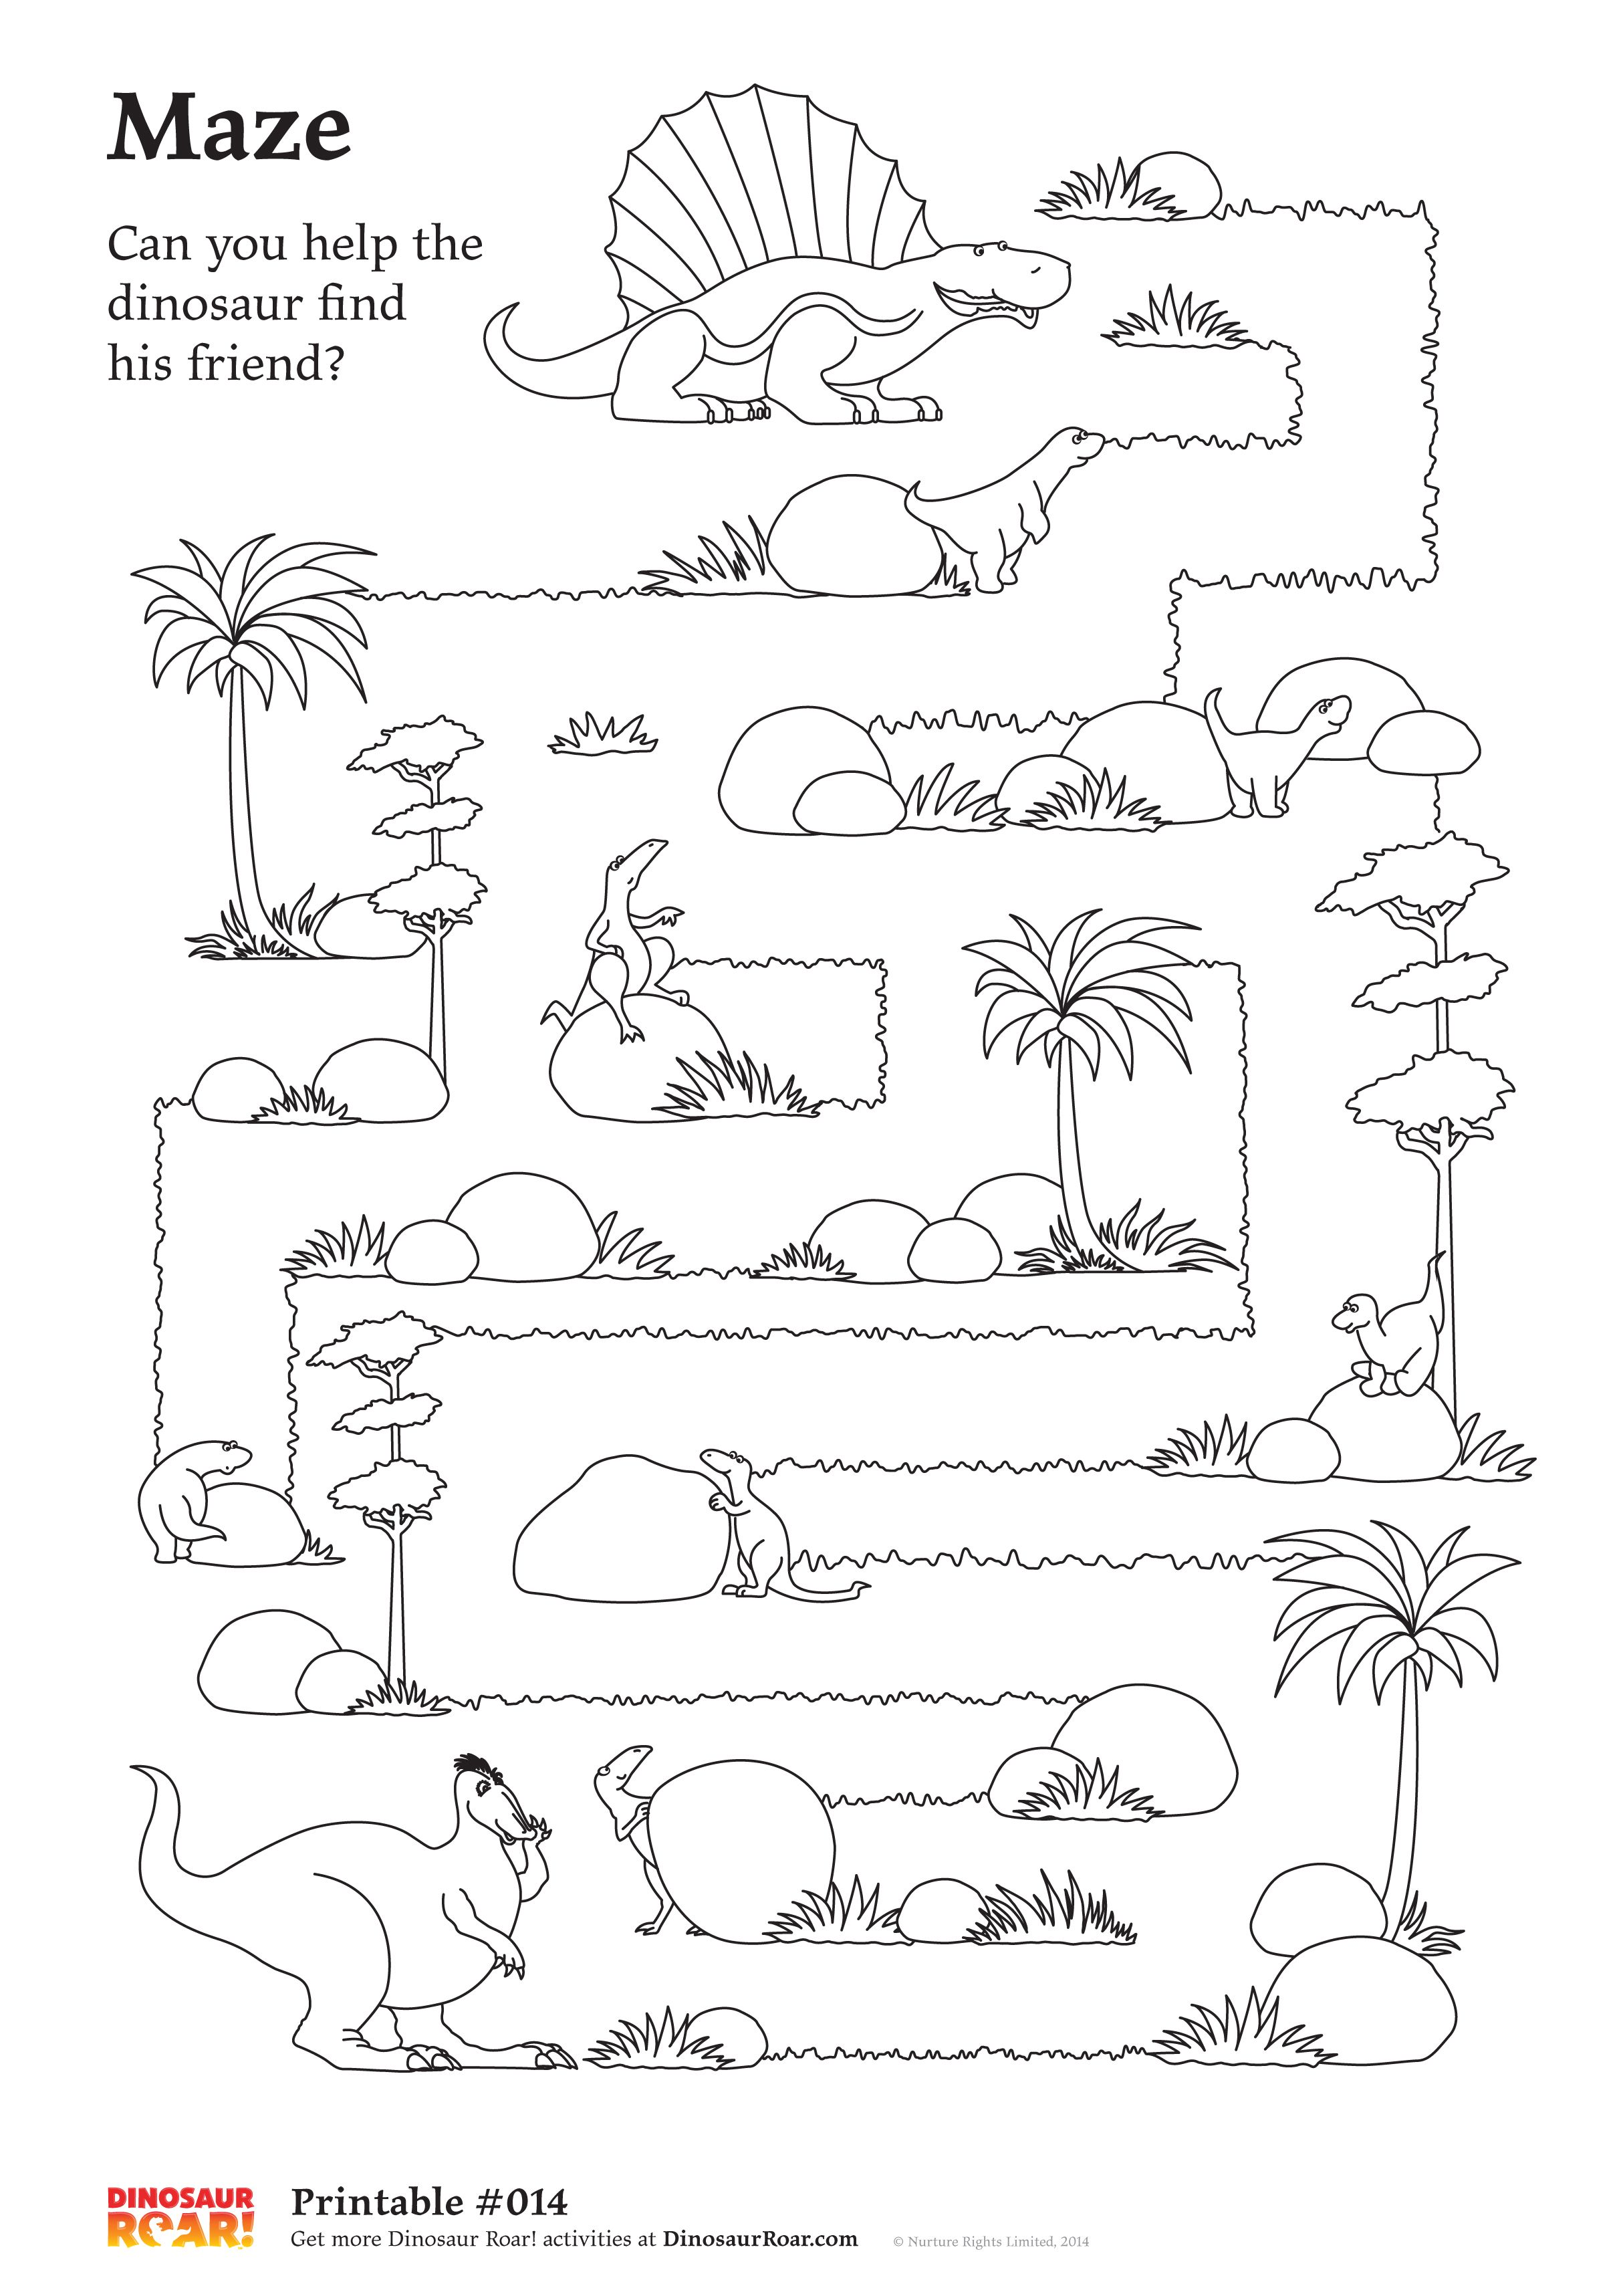 Dinosaur Maze Printable Activity Sheet Can You Help The